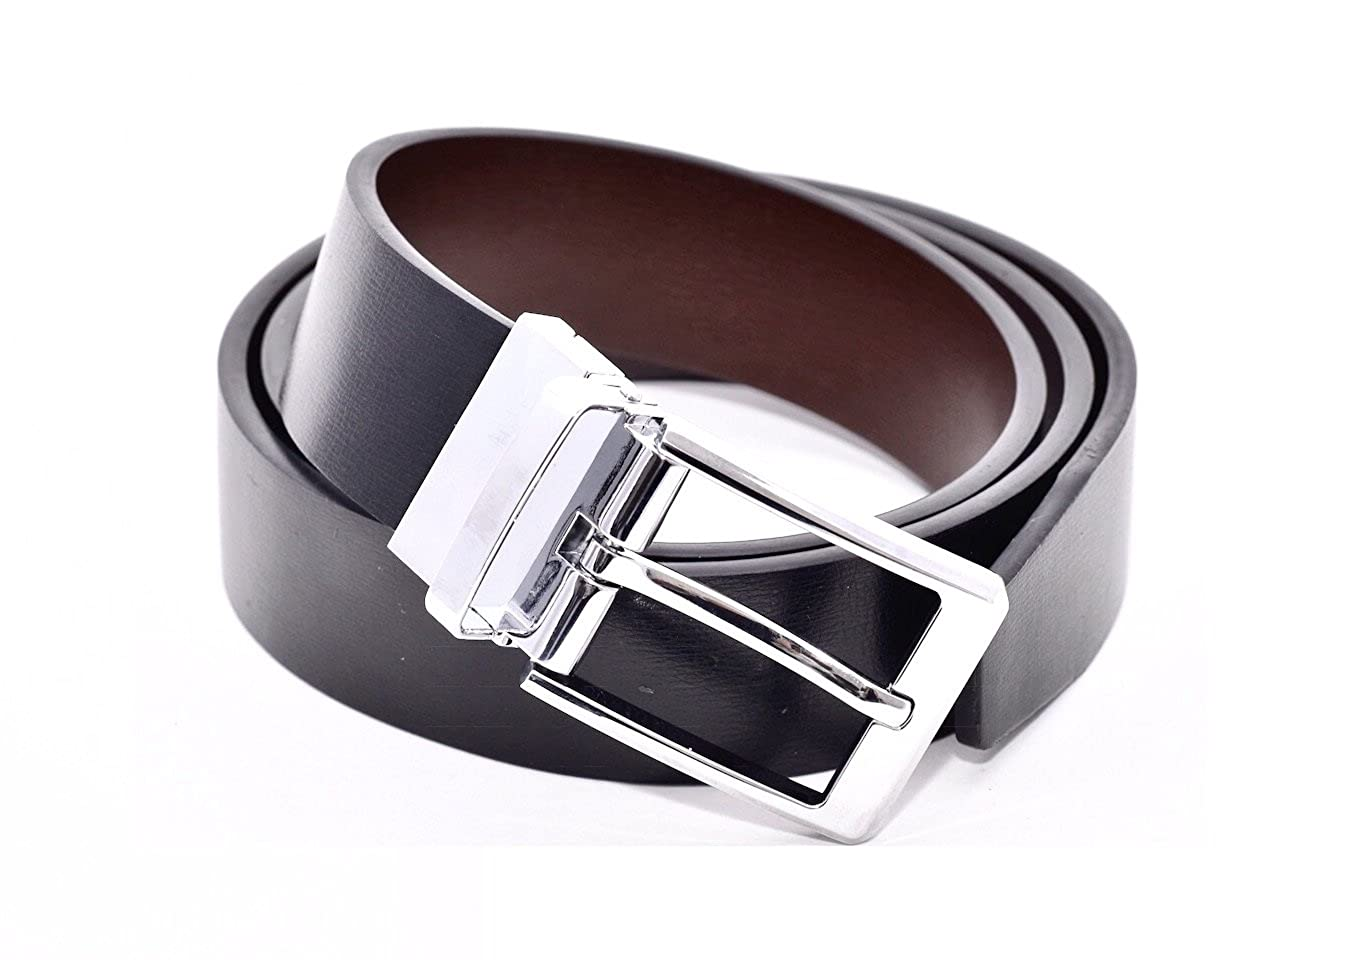 703aac976 Reversible Belt, Black Leather One Side, Brown the Other, Chrome Twist  Mechanism Buckle, 34mm Wide, Nicely Gift Boxed, Smart or Casual to Fit  Waists 32'' to ...